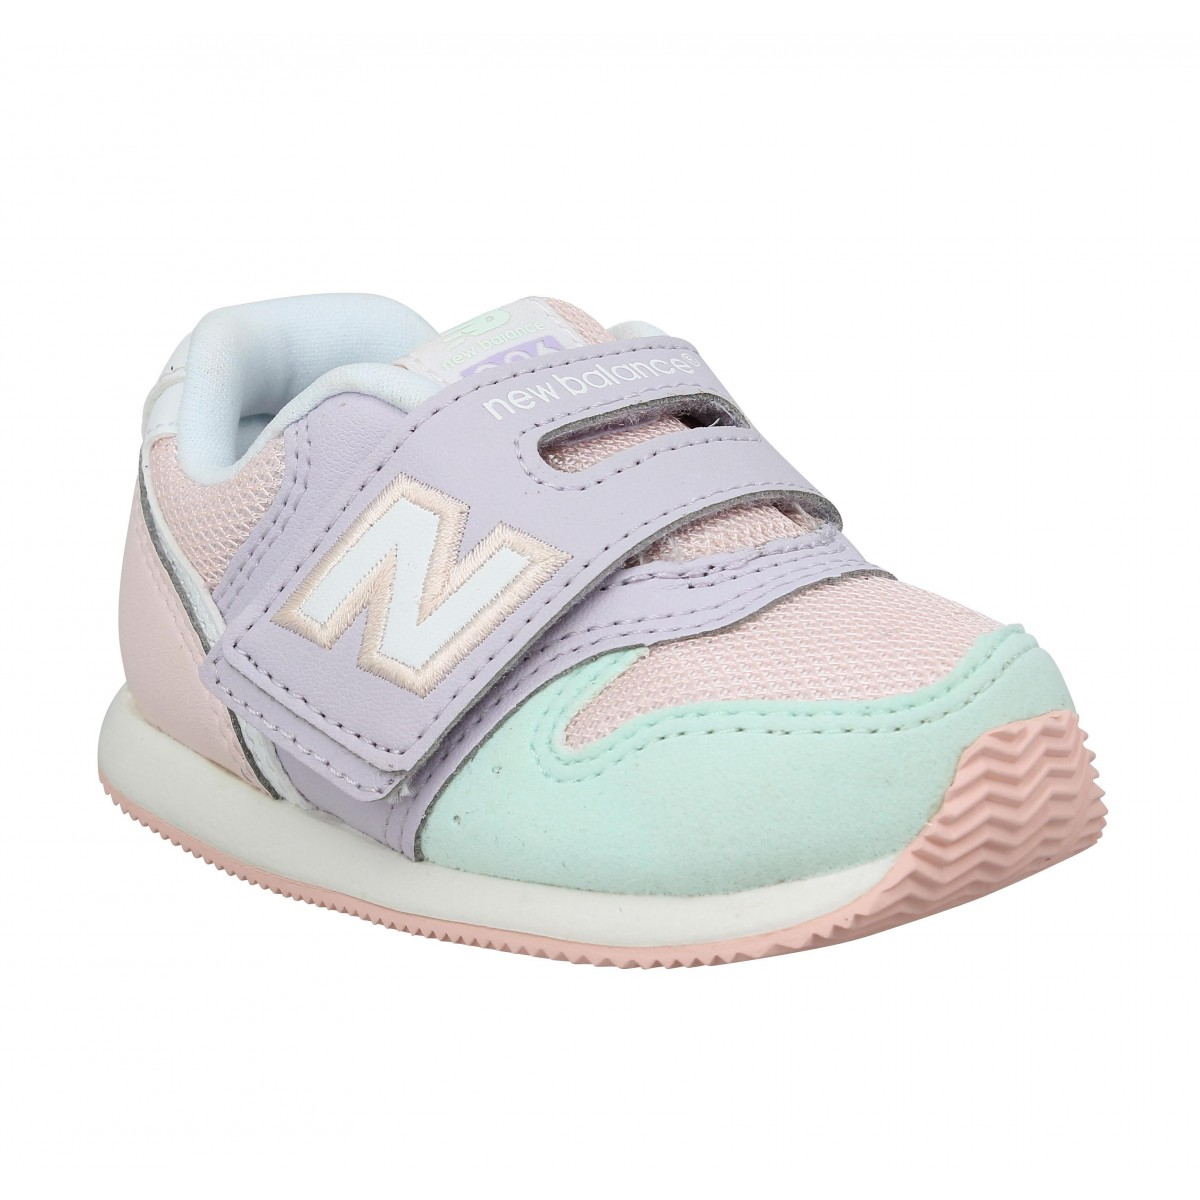 Baskets NEW BALANCE FS996 toile Enfant Pink